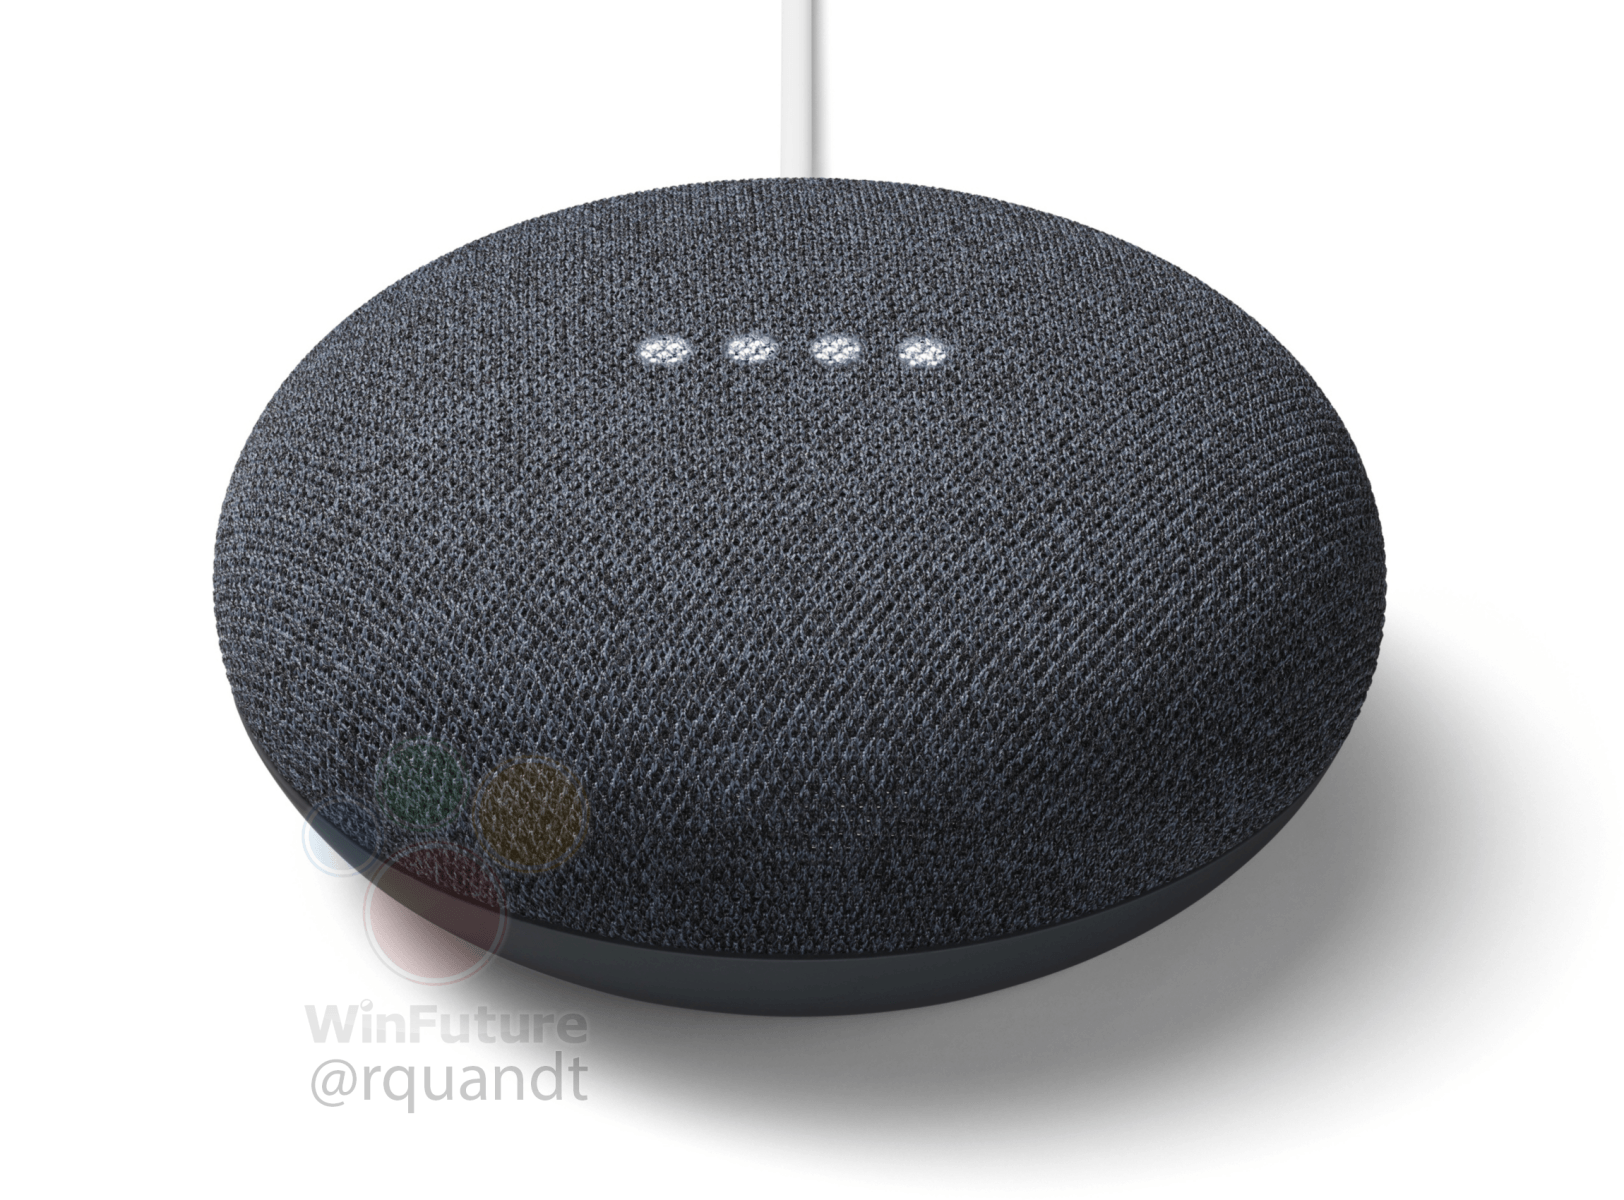 Google Announces Nest Router with Smart Speaker, Nest Mini, Affordable Pixelbook Go